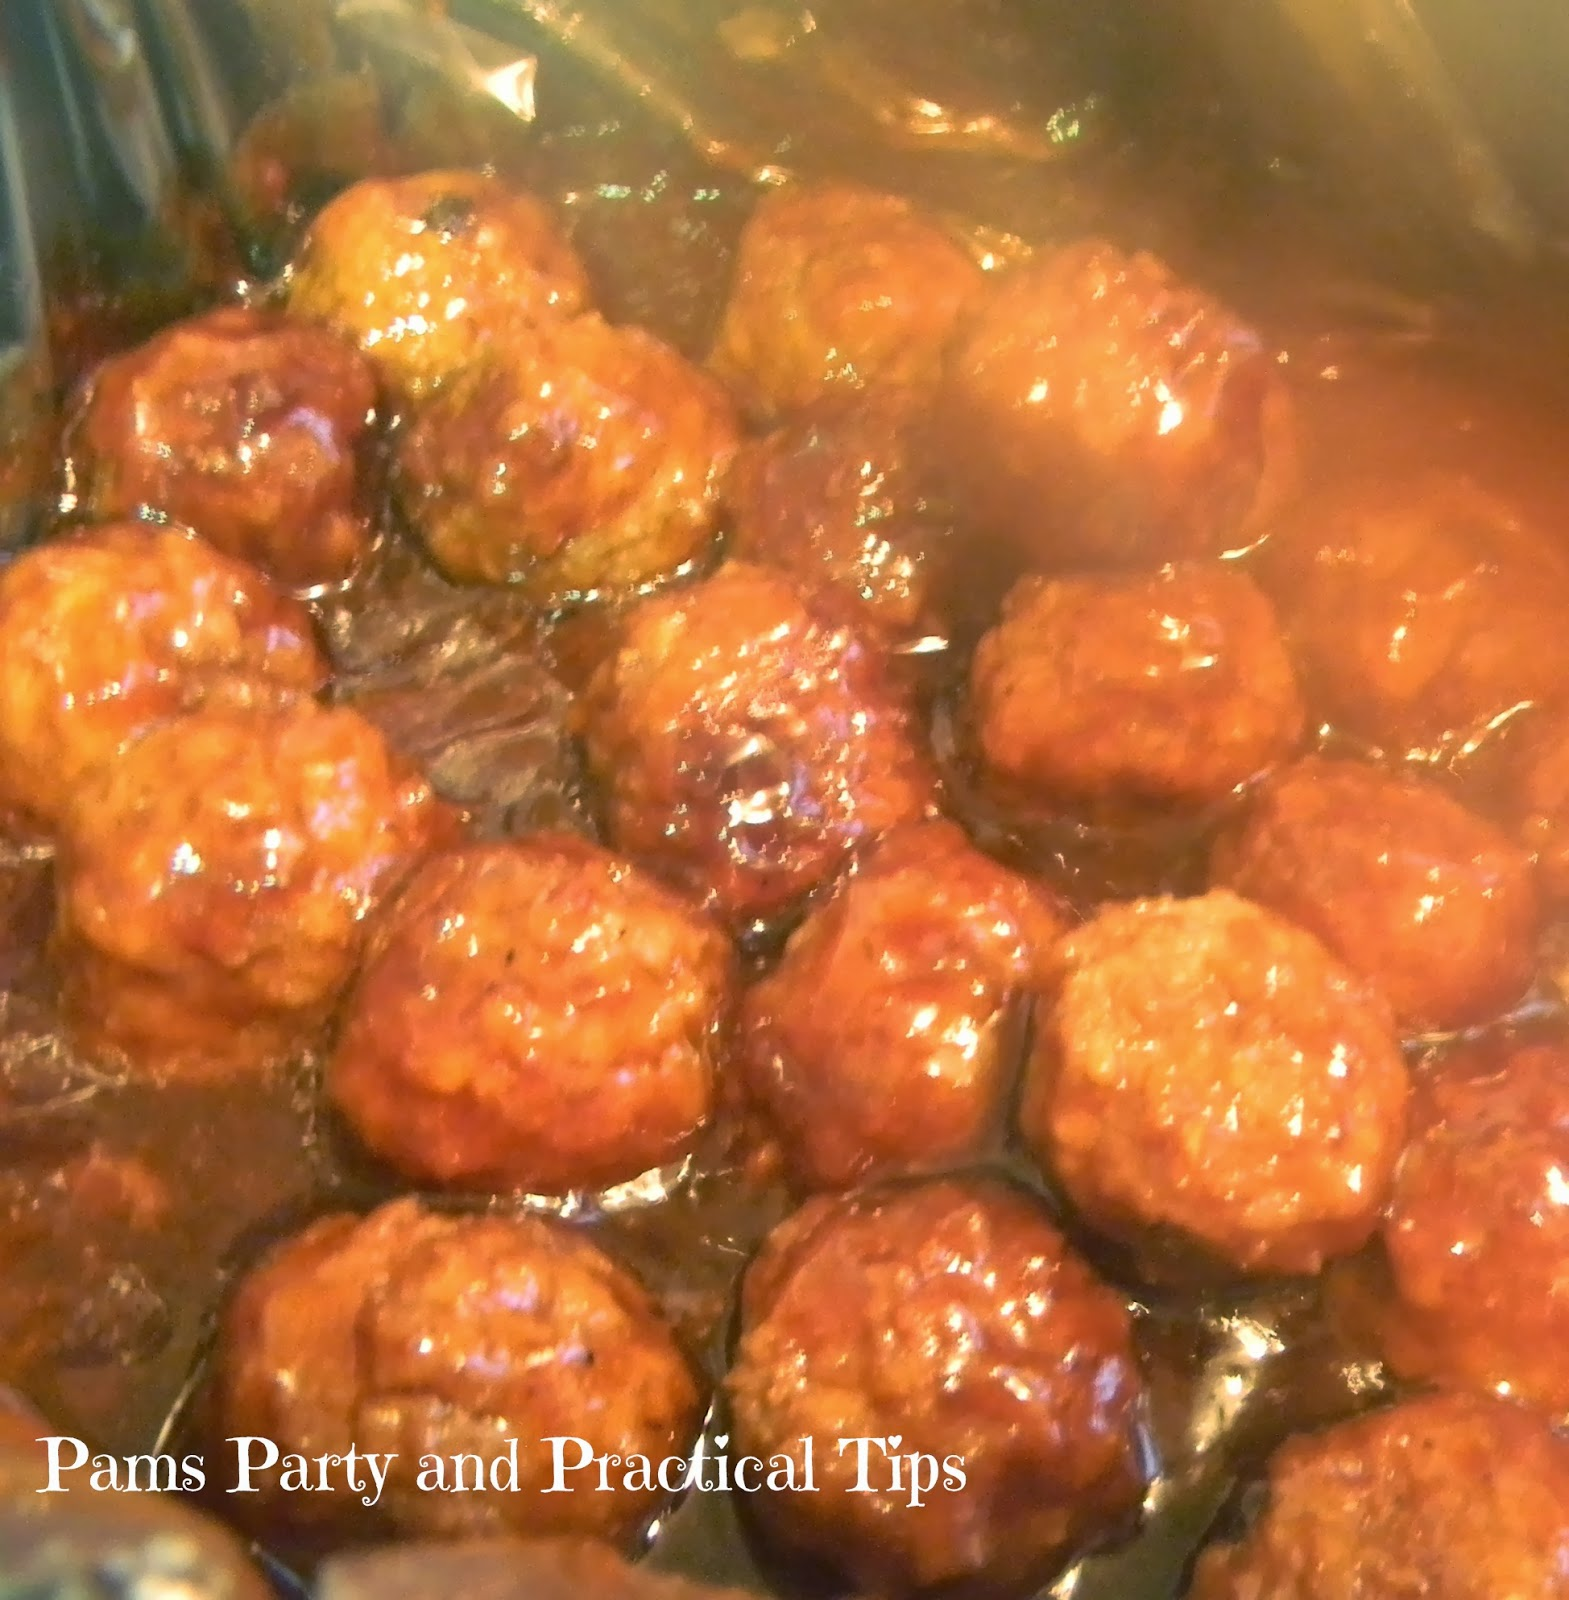 pams party u0026 practical tips cloudy with chance of meatballs 2